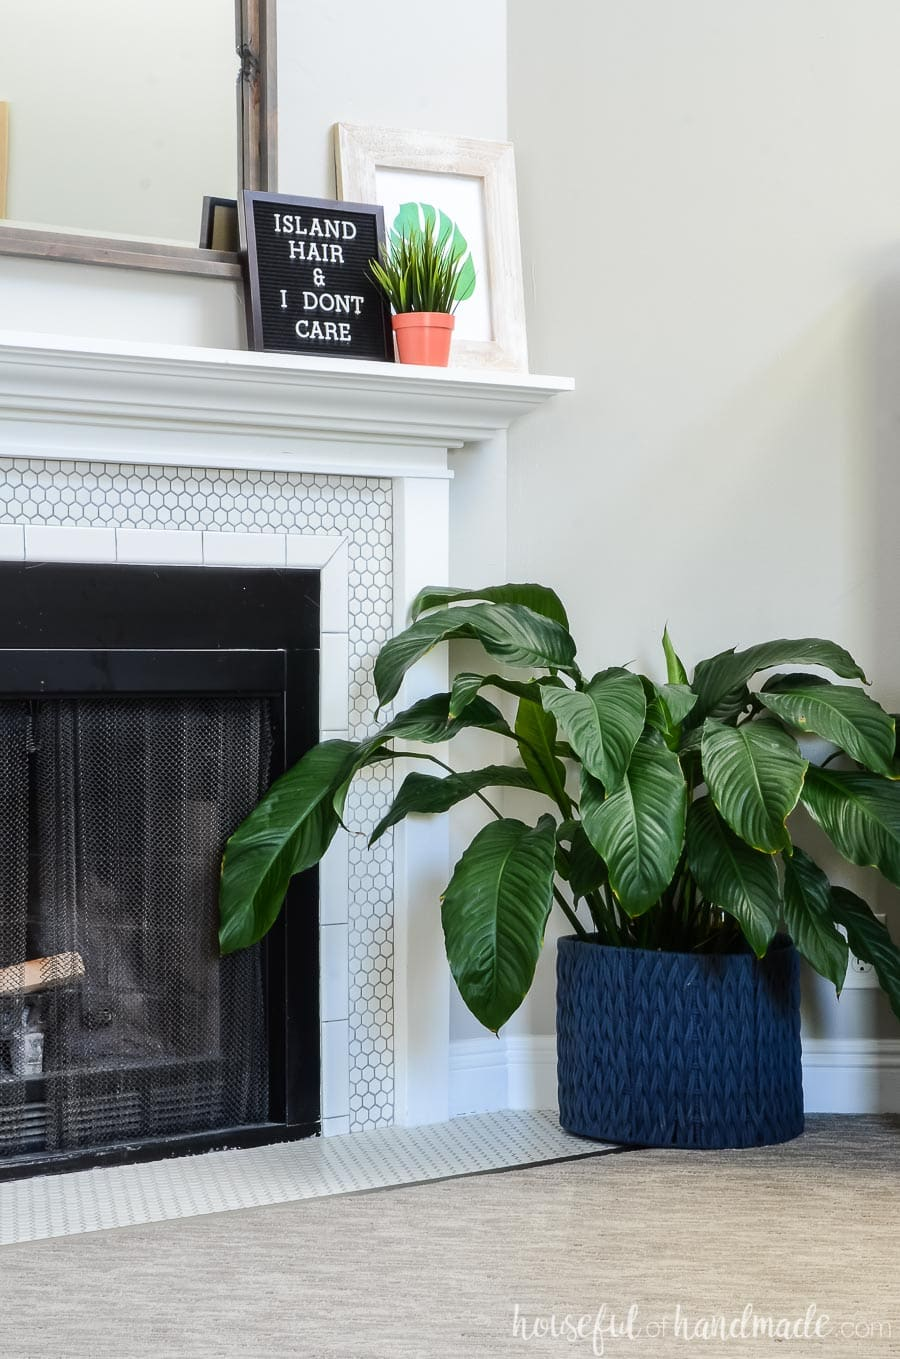 Tropical living room tour. See how we created a tropical oasis in our living room on a budget. Housefulofhandmade.com